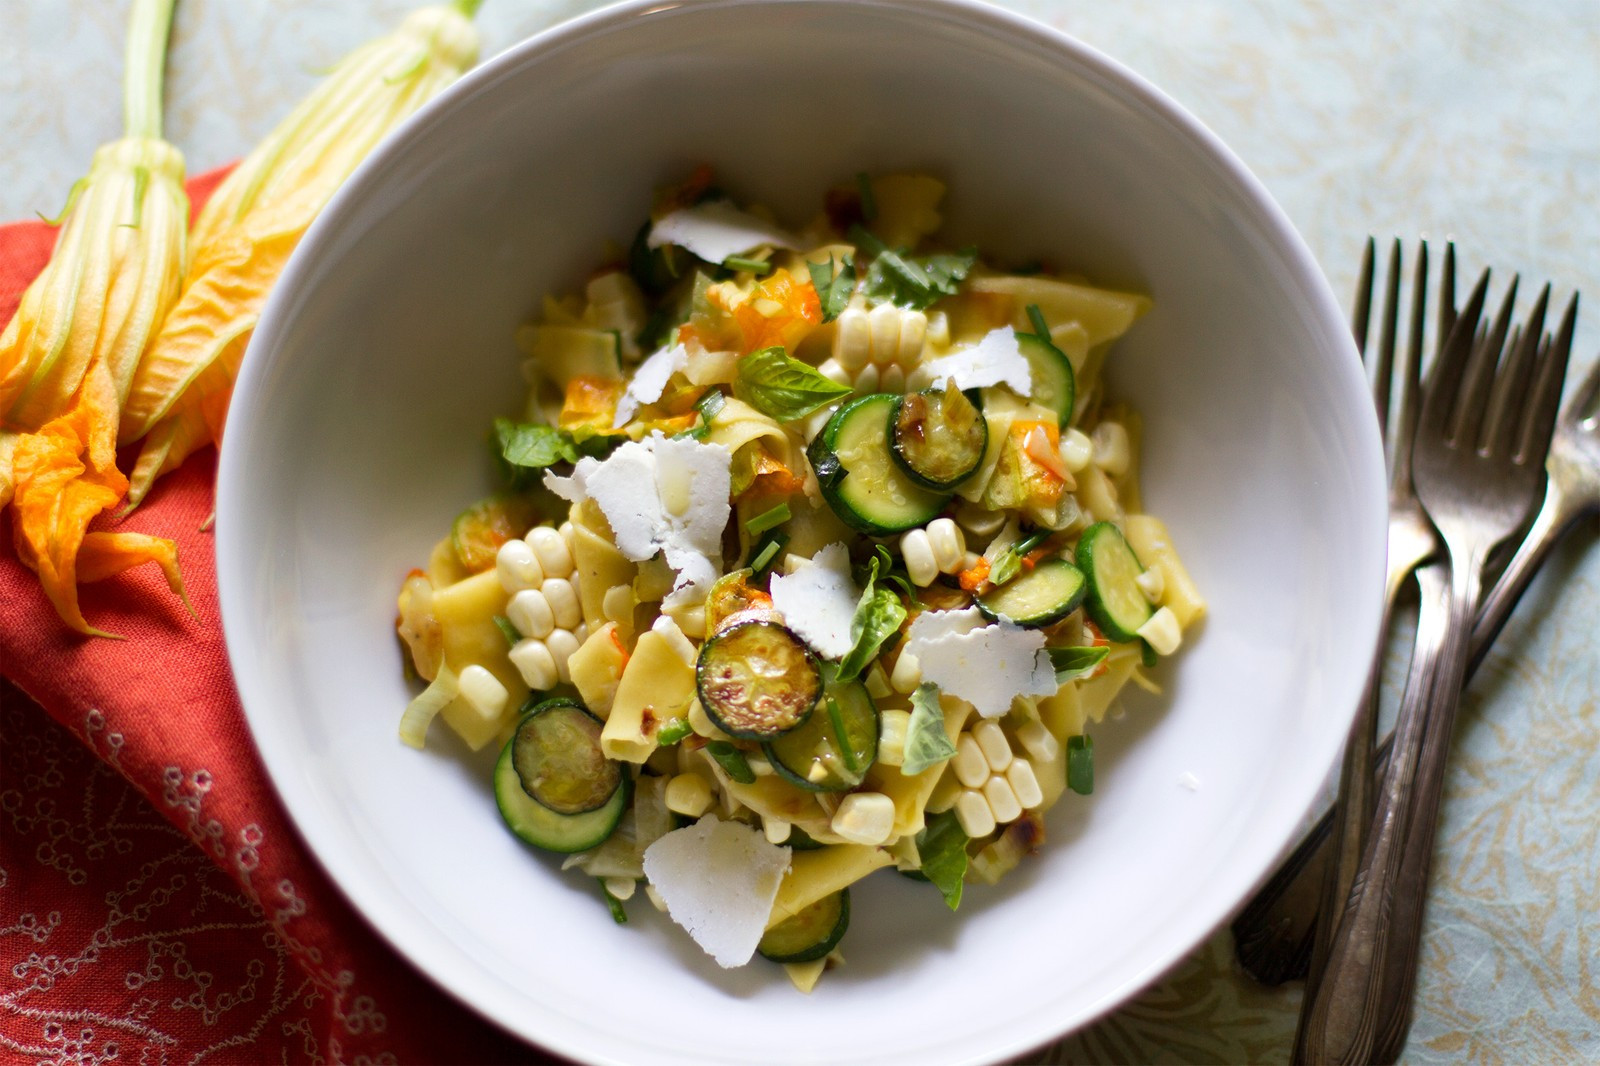 Summer Vegetarian Pasta Recipes  Maltagliati Pasta with Summer Ve ables and Ricotta Salata